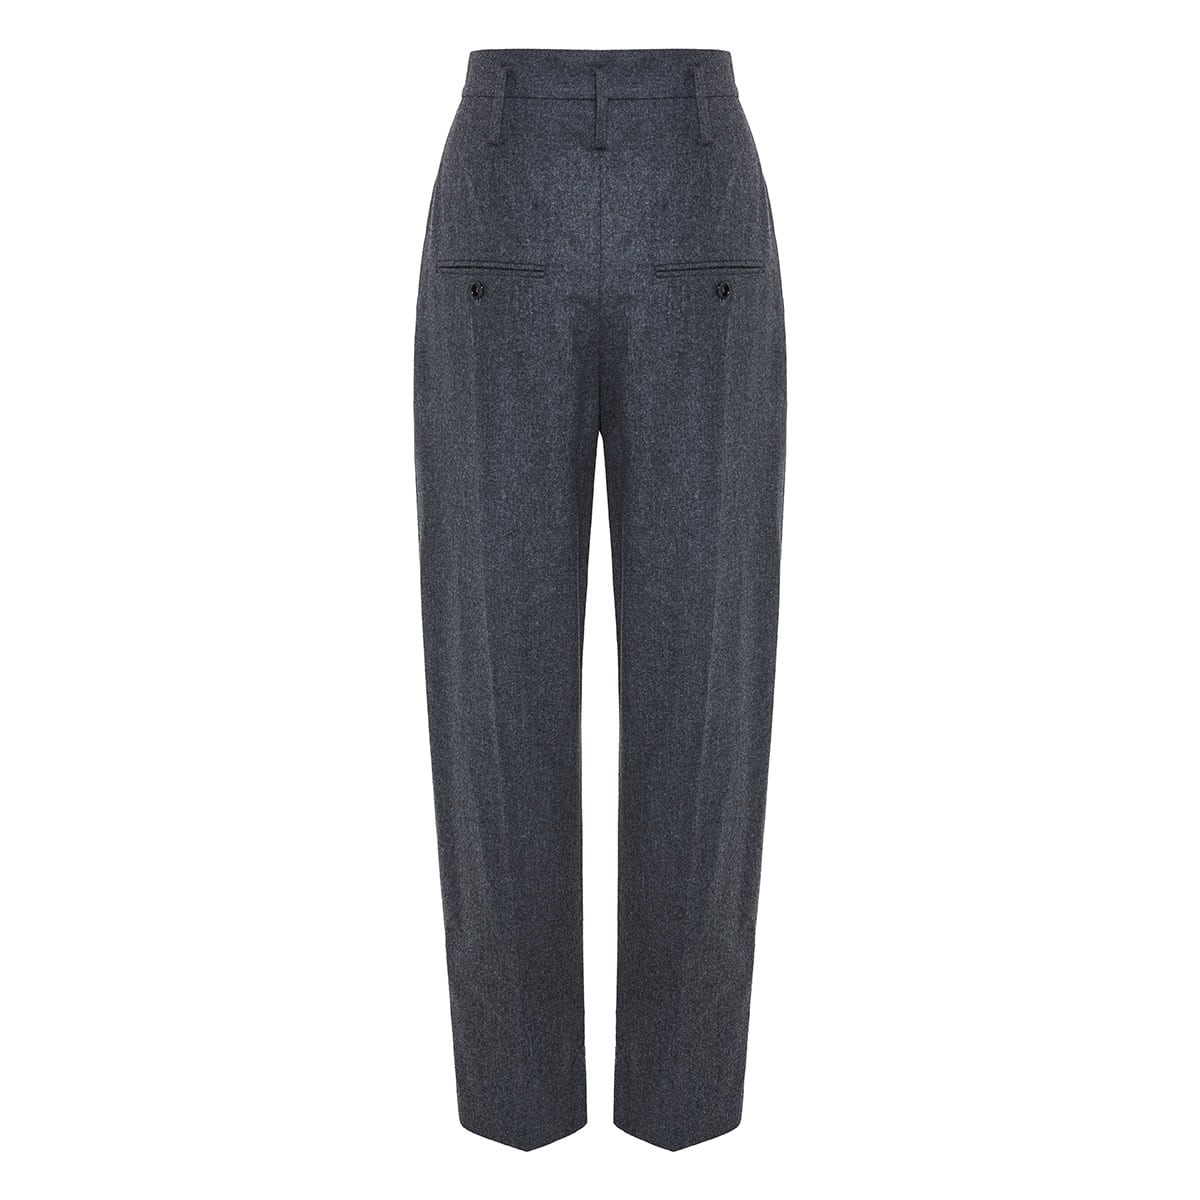 Racomisl high-waist tapered trousers